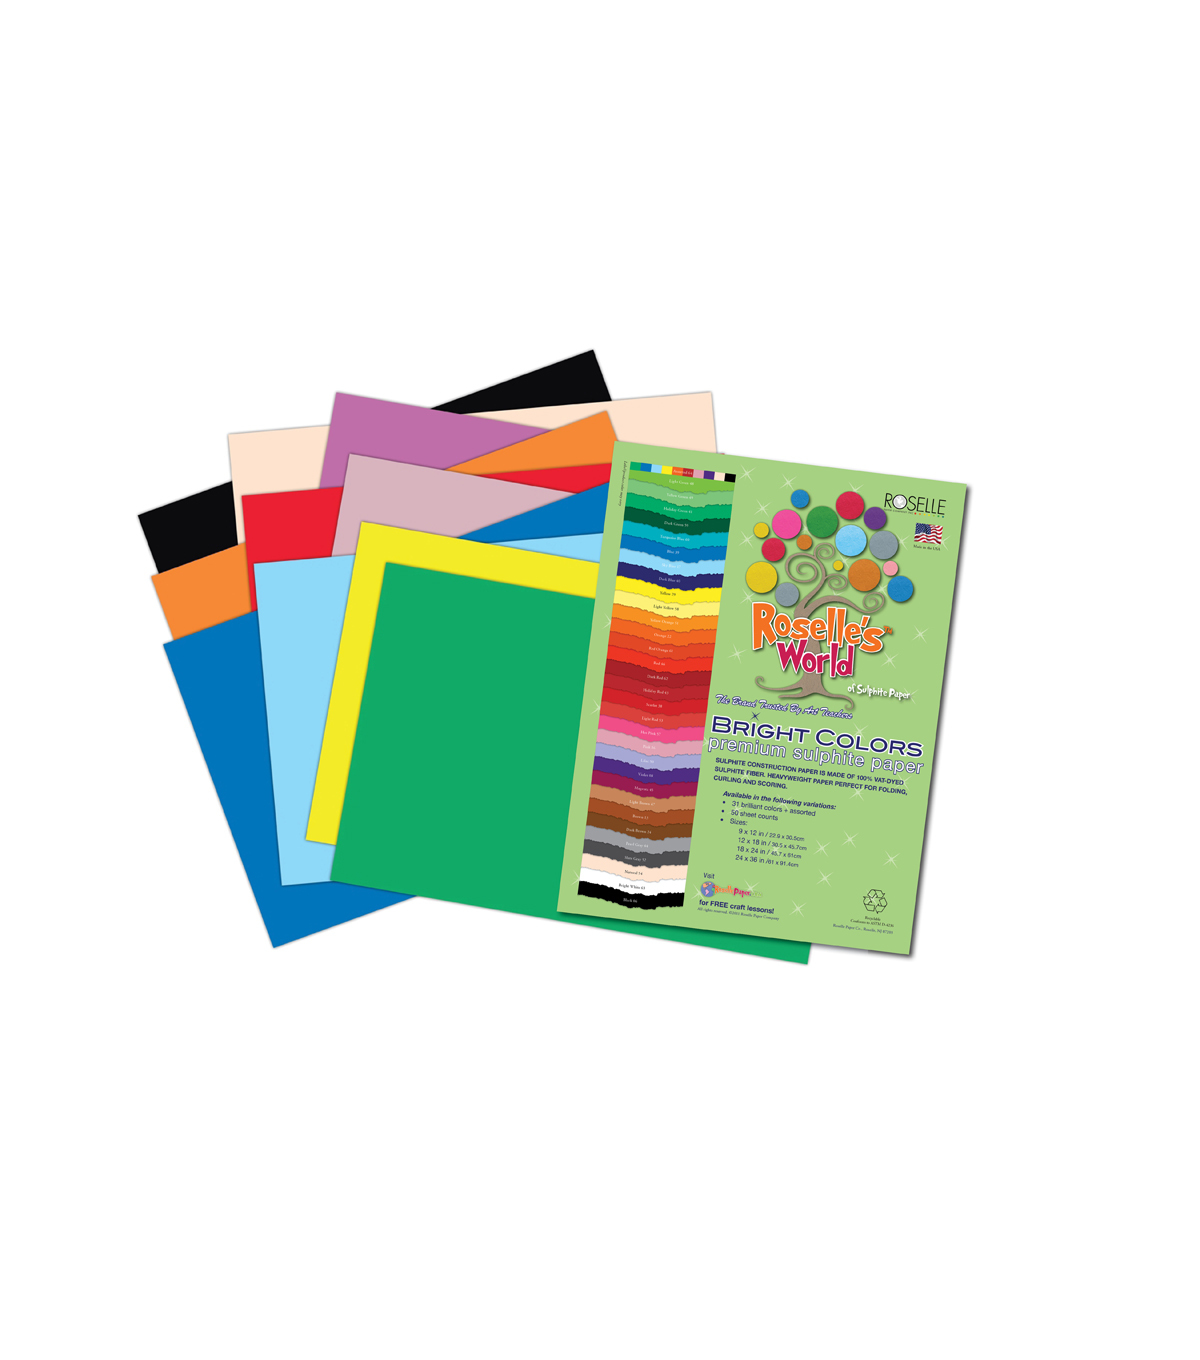 Roselle\u0027s Bright Colors Sulfite Construction Paper 9\u0027\u0027 x 12\u0027\u0027-50 sheets Assorted Colors